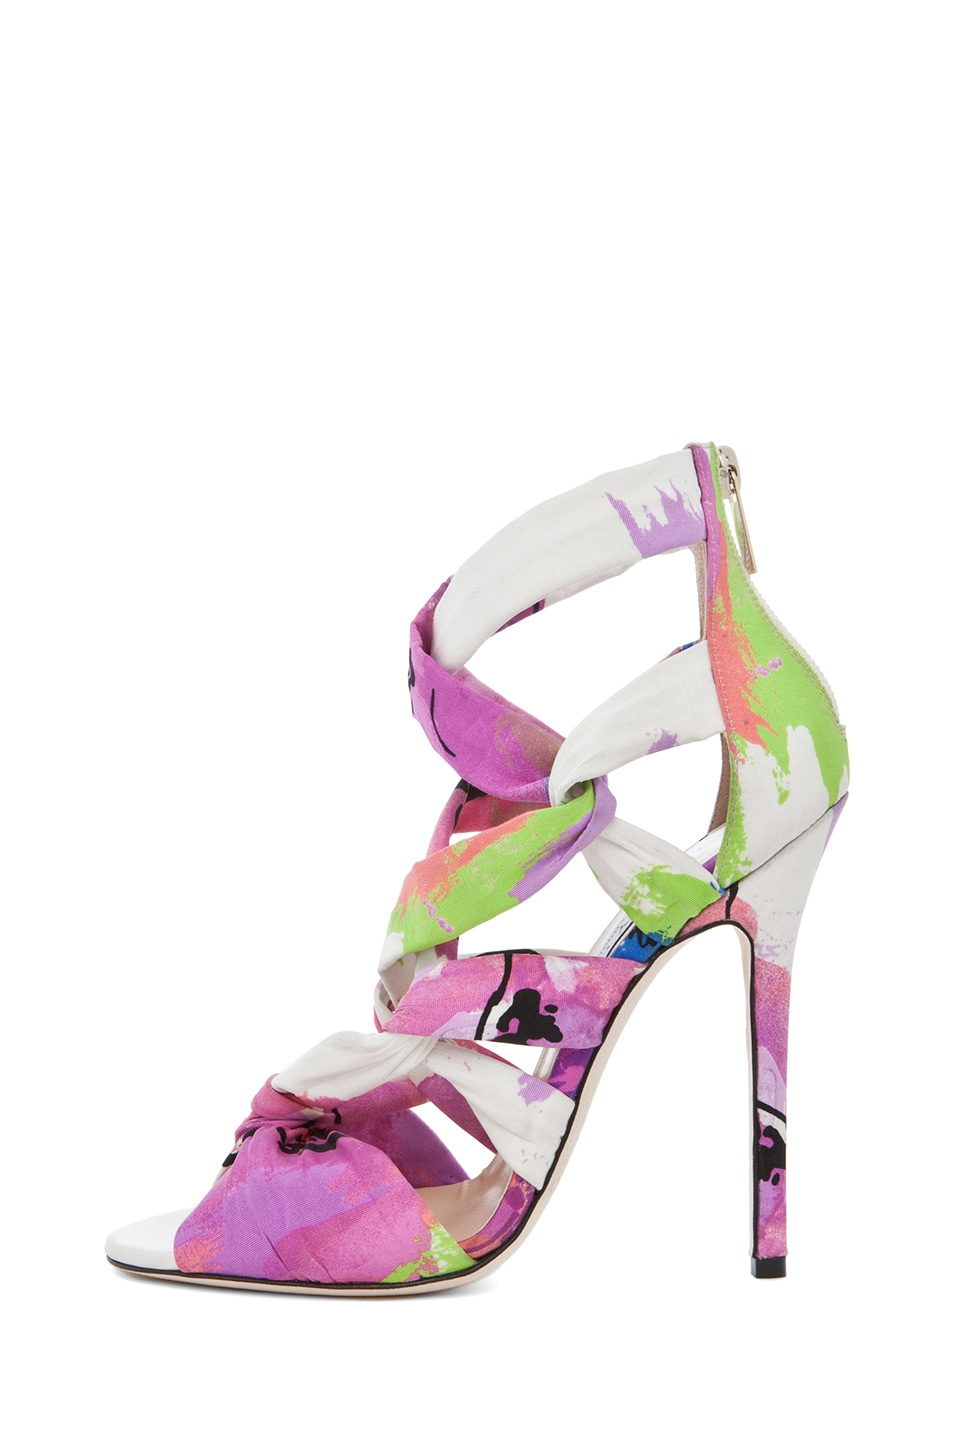 Image 1 of Jimmy Choo Kemble Floral Heel in Pink Mix